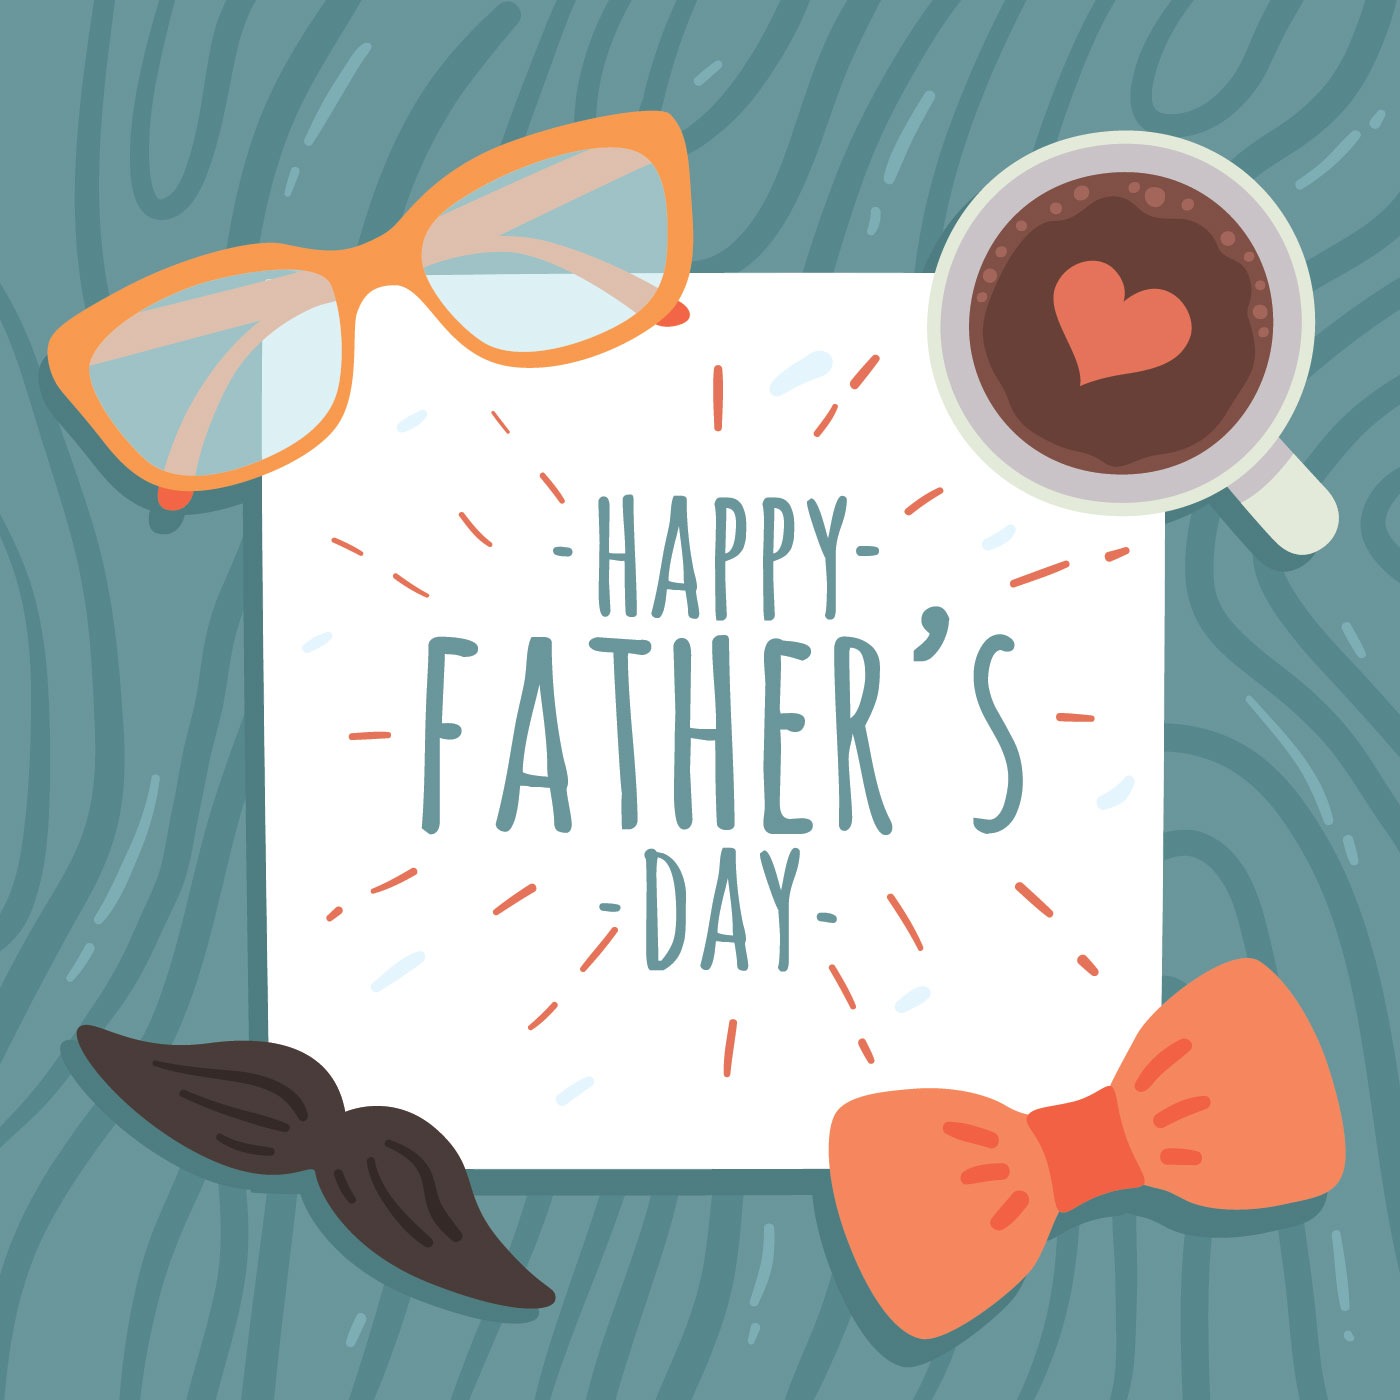 Happy Fathers Day Vector - Download Free Vector Art, Stock ...